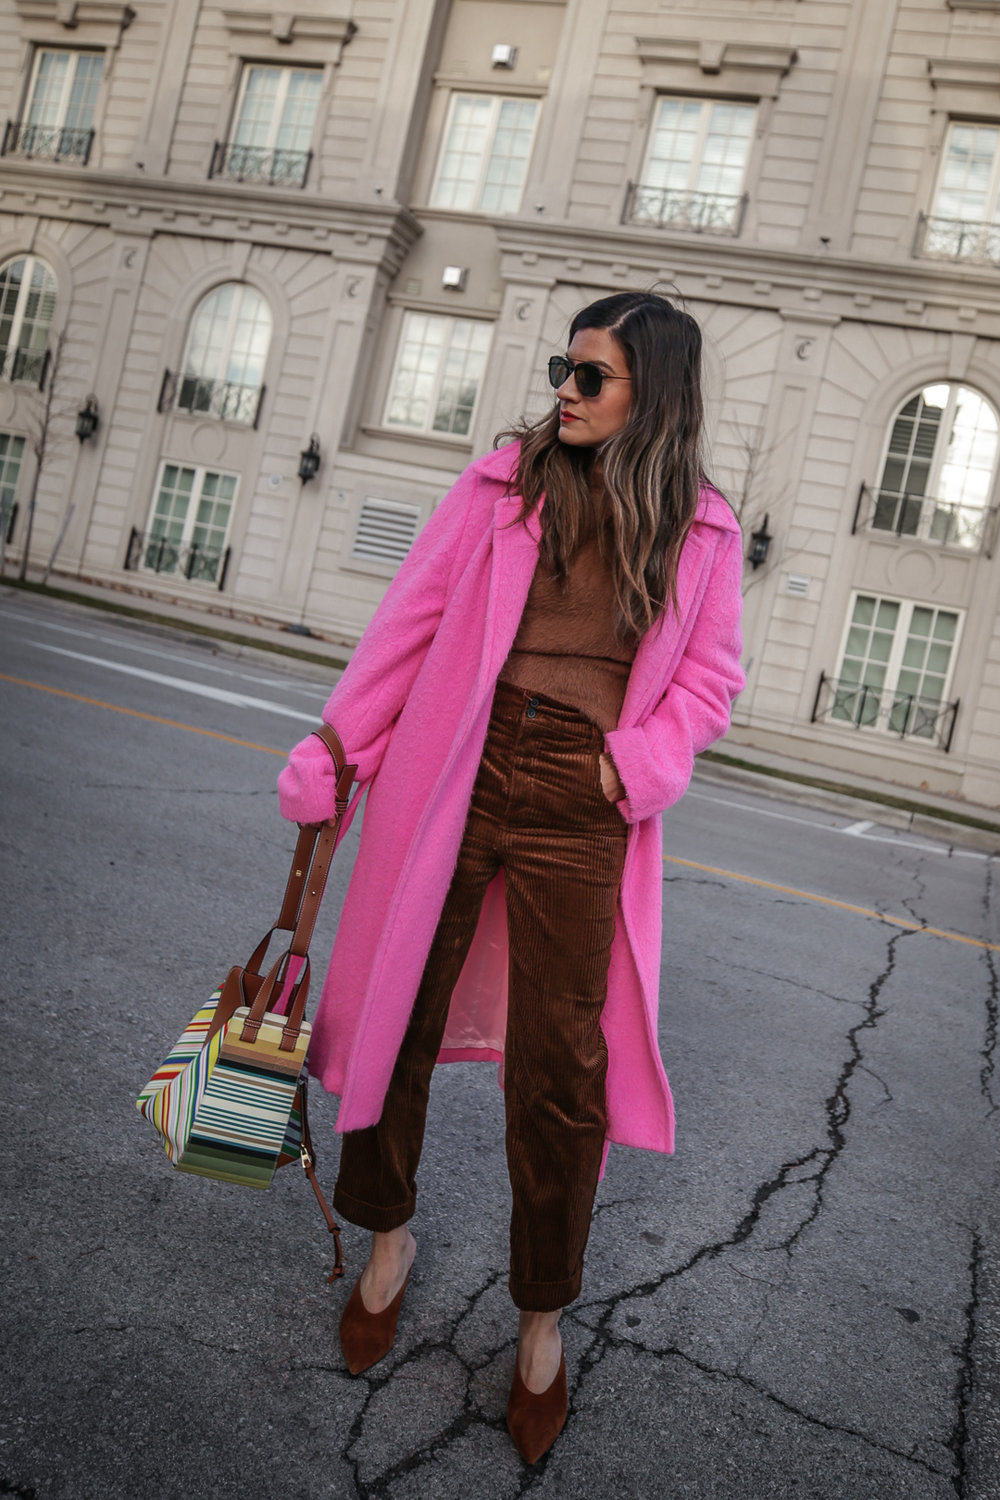 Nathalie Martin wearing Helmut Lang pink belt tie wool coat, brown corduroy pants, Zara brown textured sweater, Prada brown suede mules, Loewe striped Hammock bag, Bonlook Class sunglasses, street style, woahstyle.com_5150.jpg